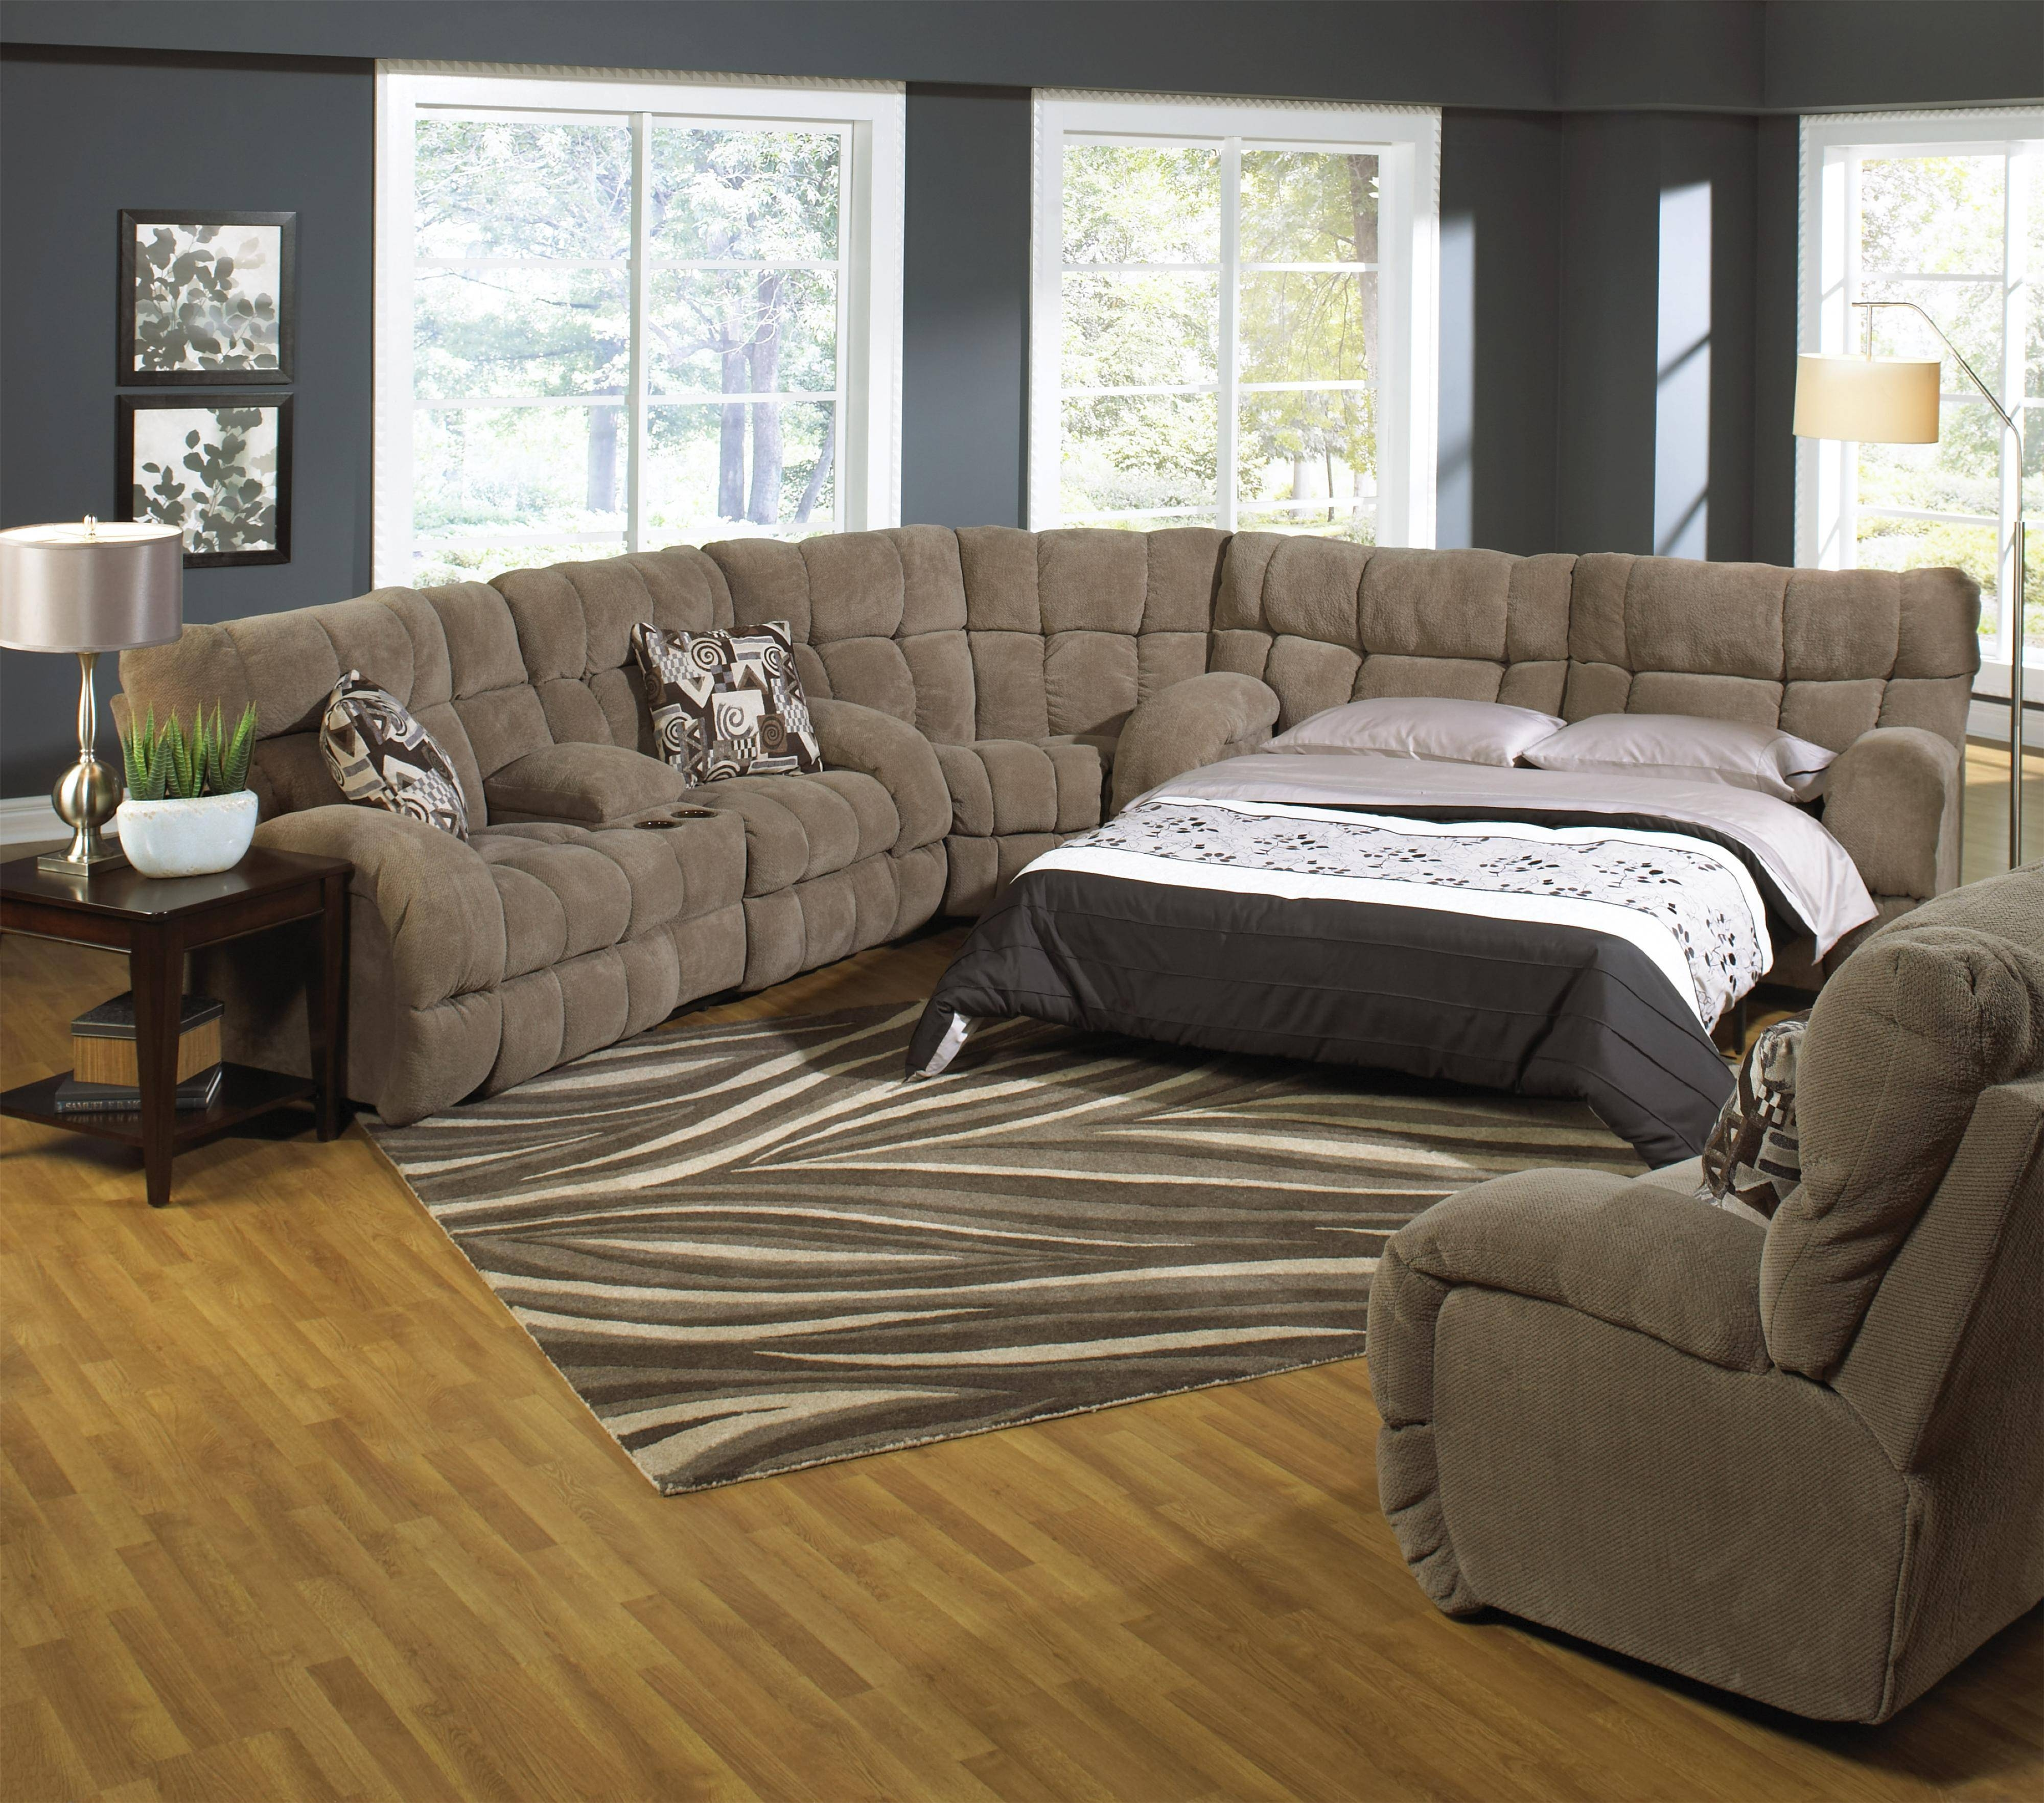 Furniture: Incredible Style Sectional Reclining Sofas For Your With Regard To Sleeper Sectional Sofas (View 7 of 30)